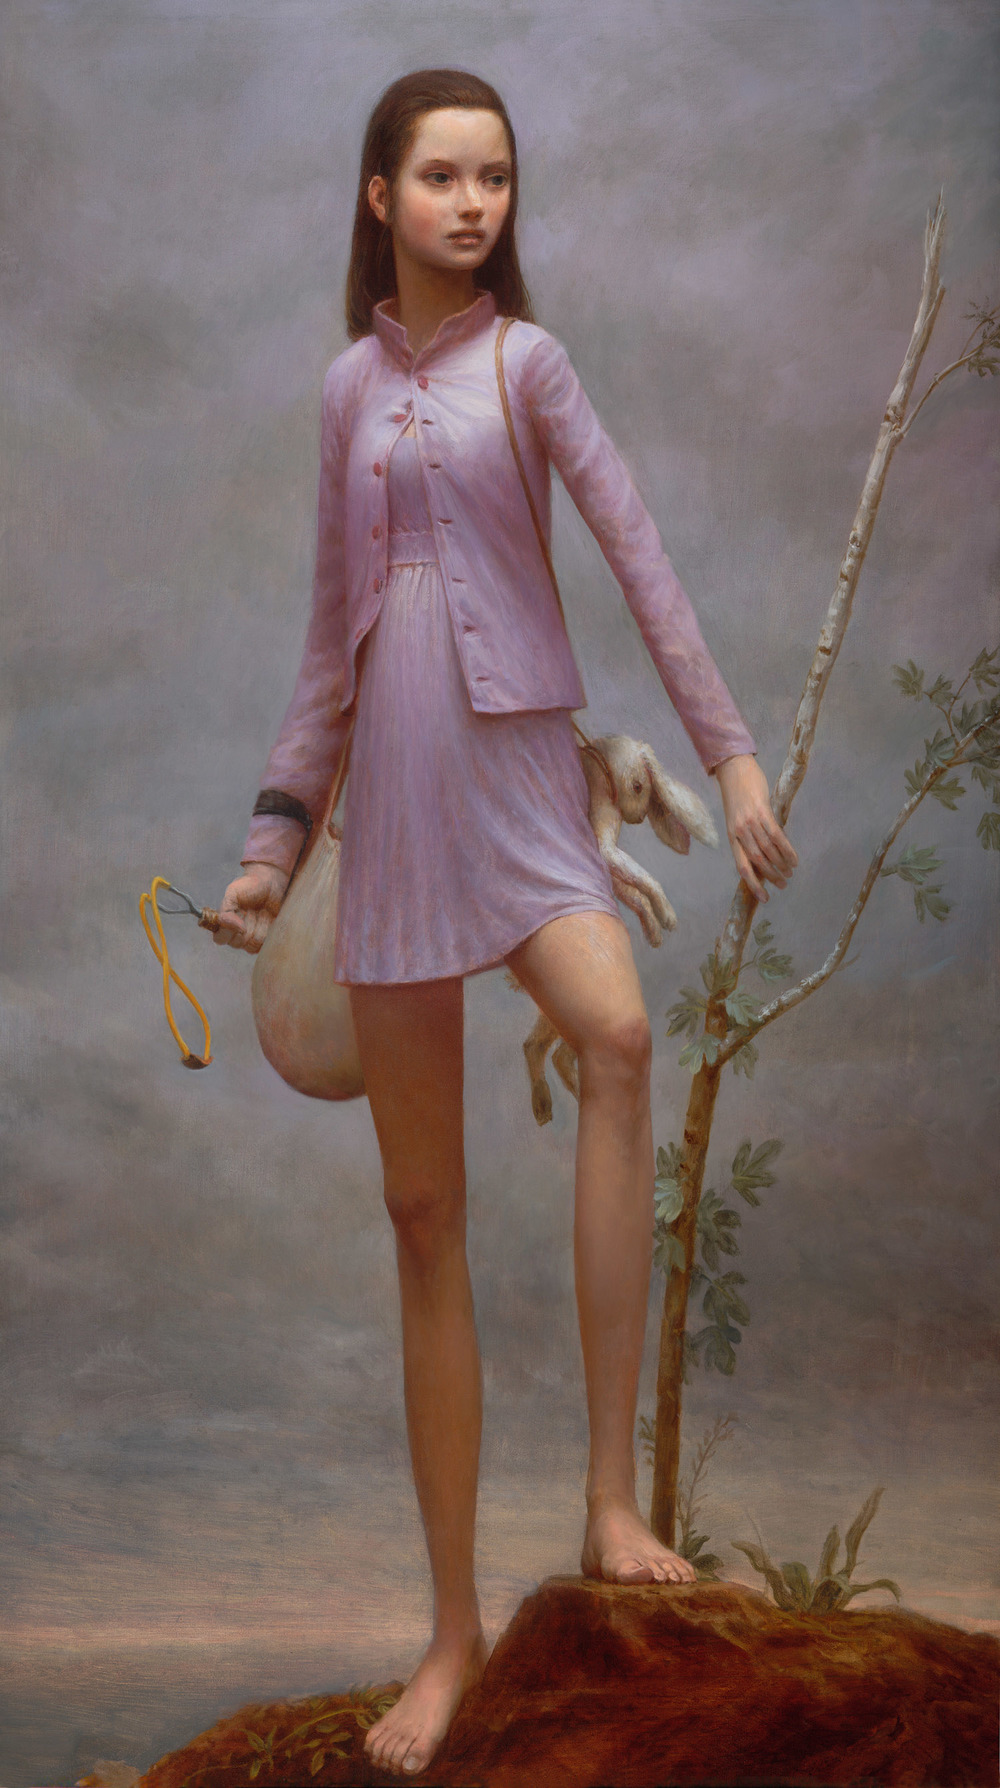 The Delegate's Daughter , 56 x 32 in, 2007